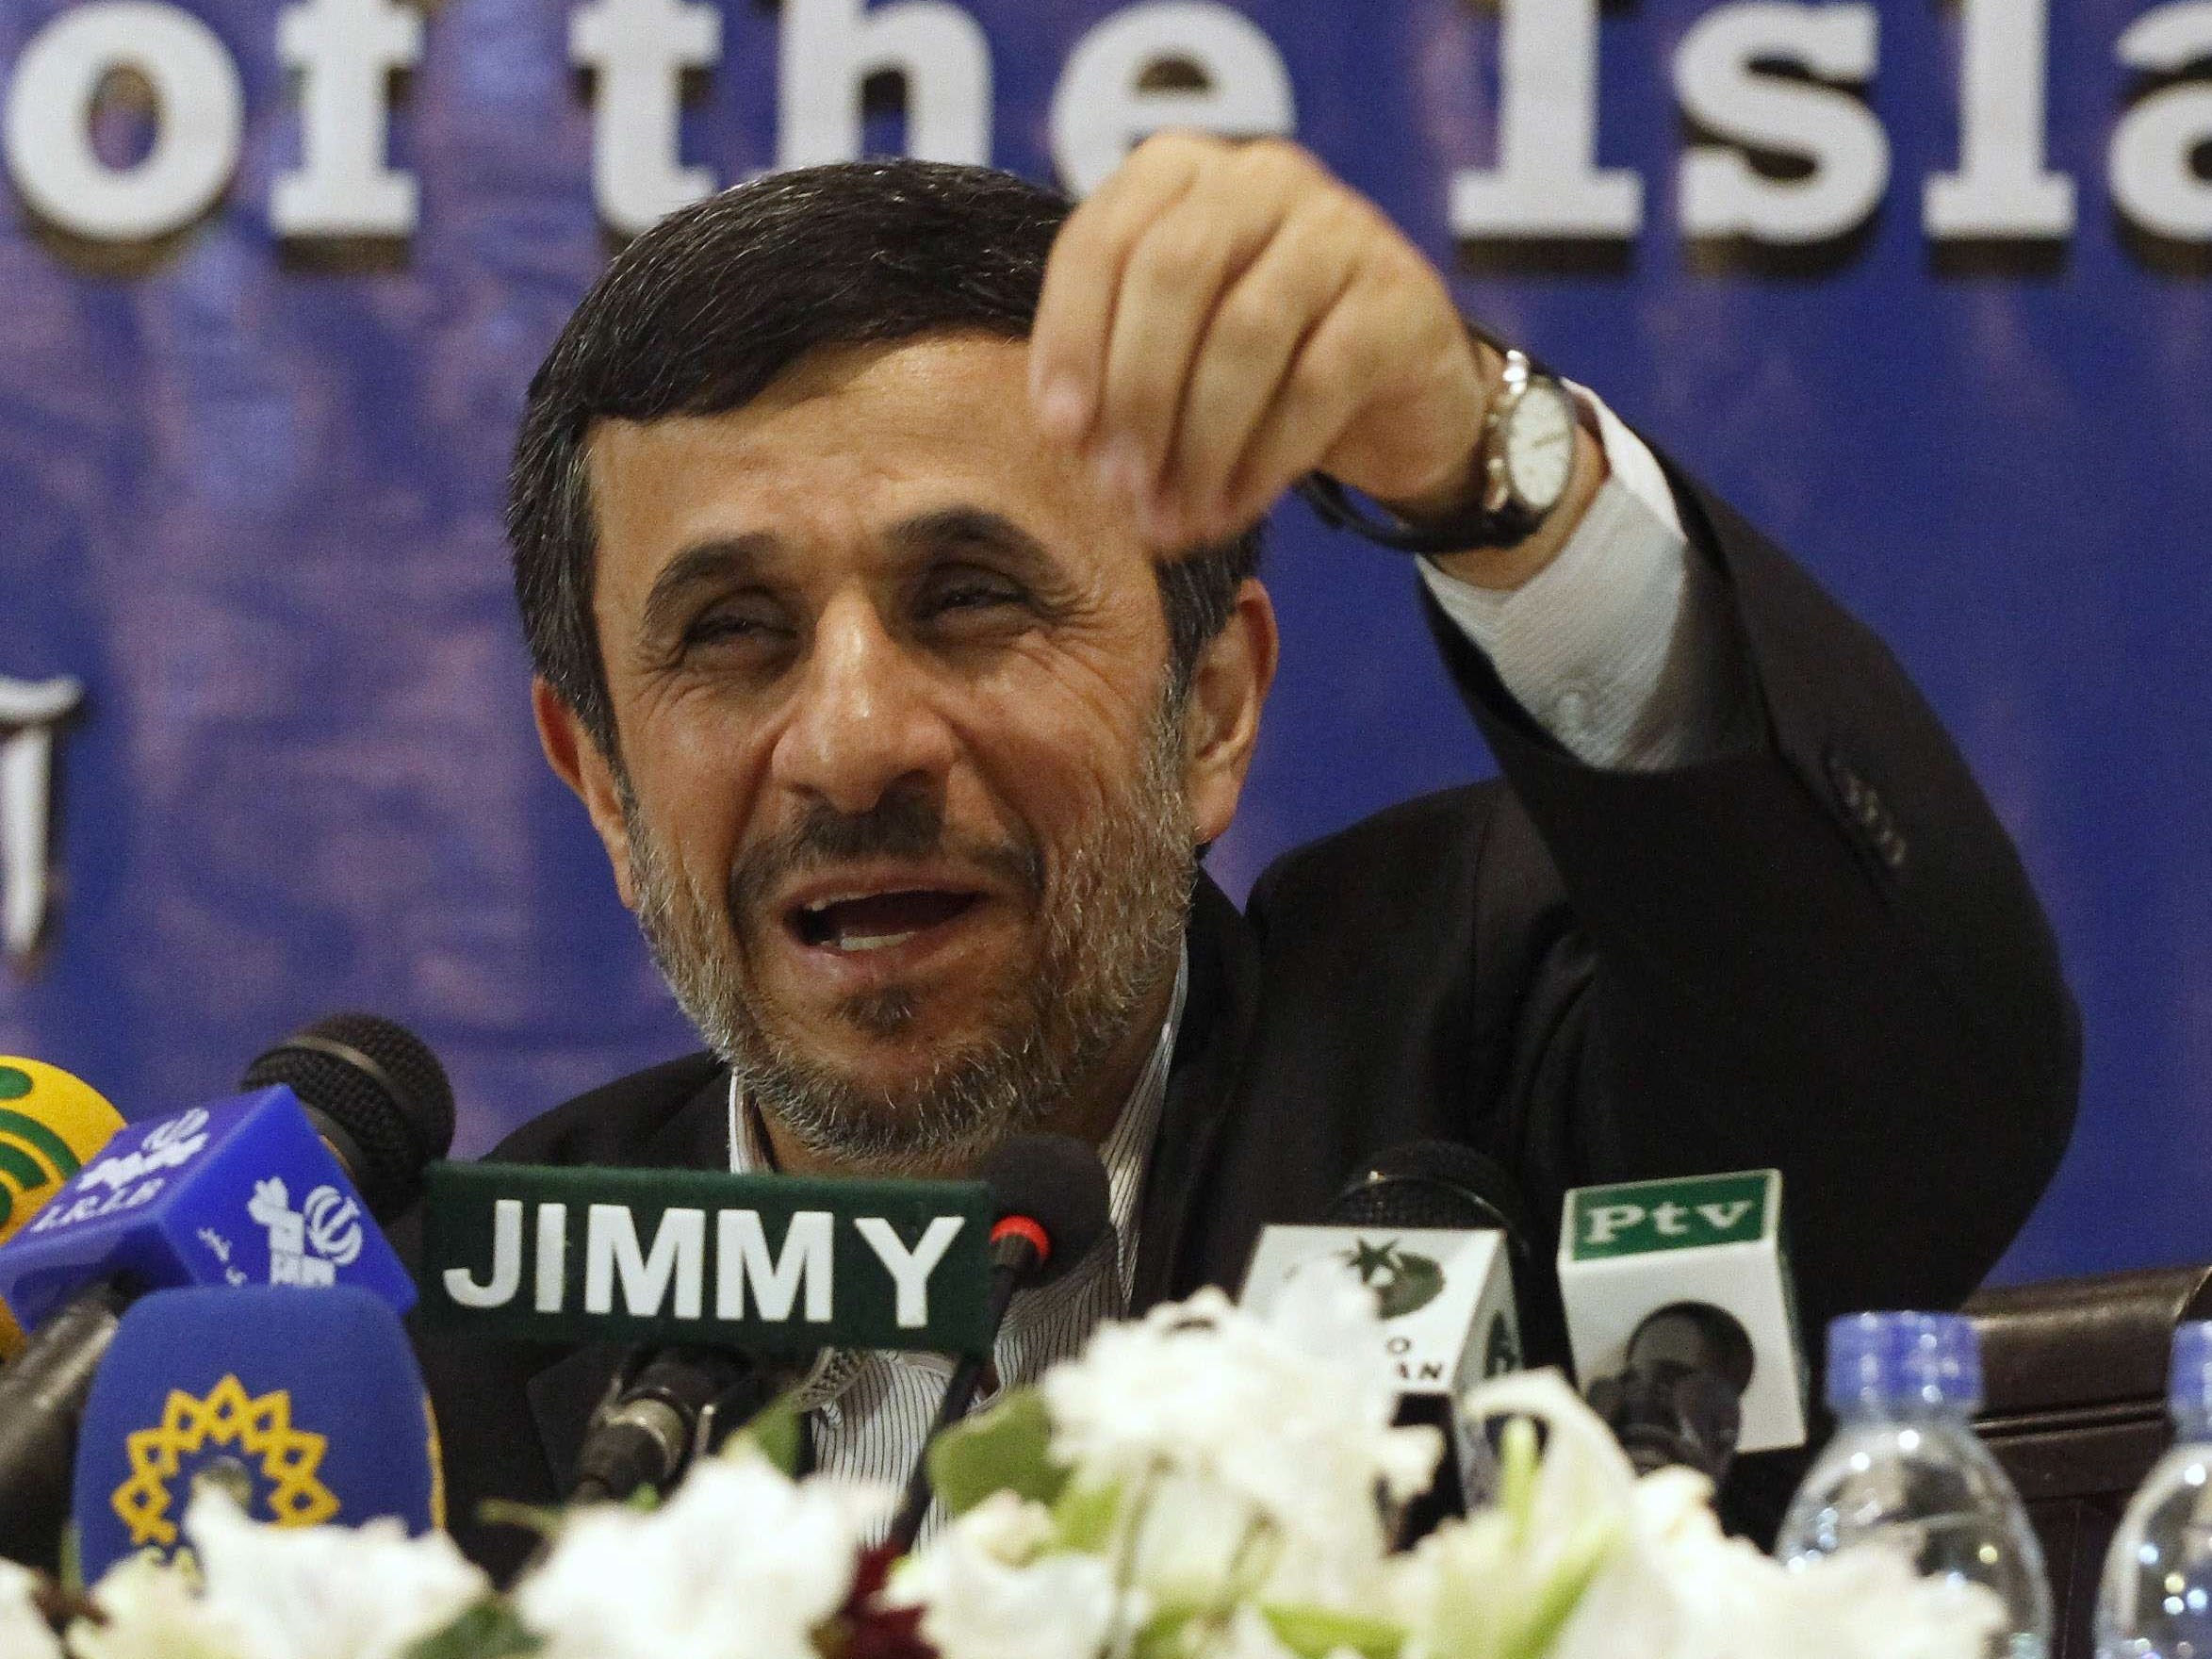 former iranian president ahmadinejad arrested for inciting unrest reports